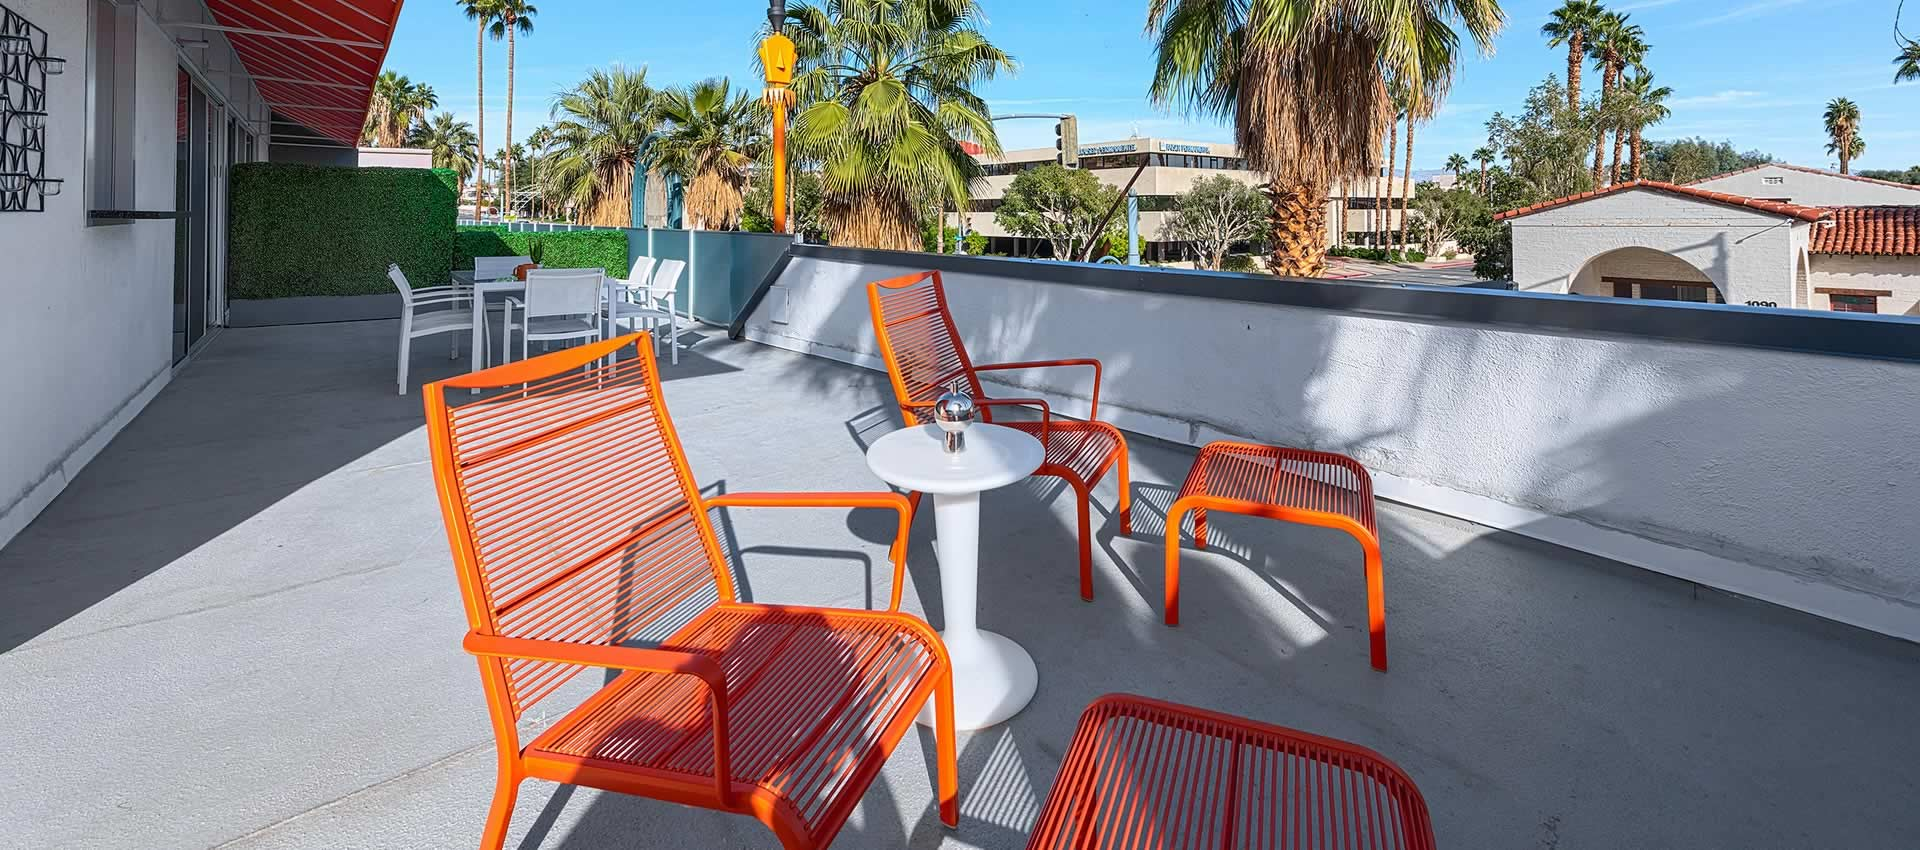 twist hotel room 219 balcony with tables and chairs